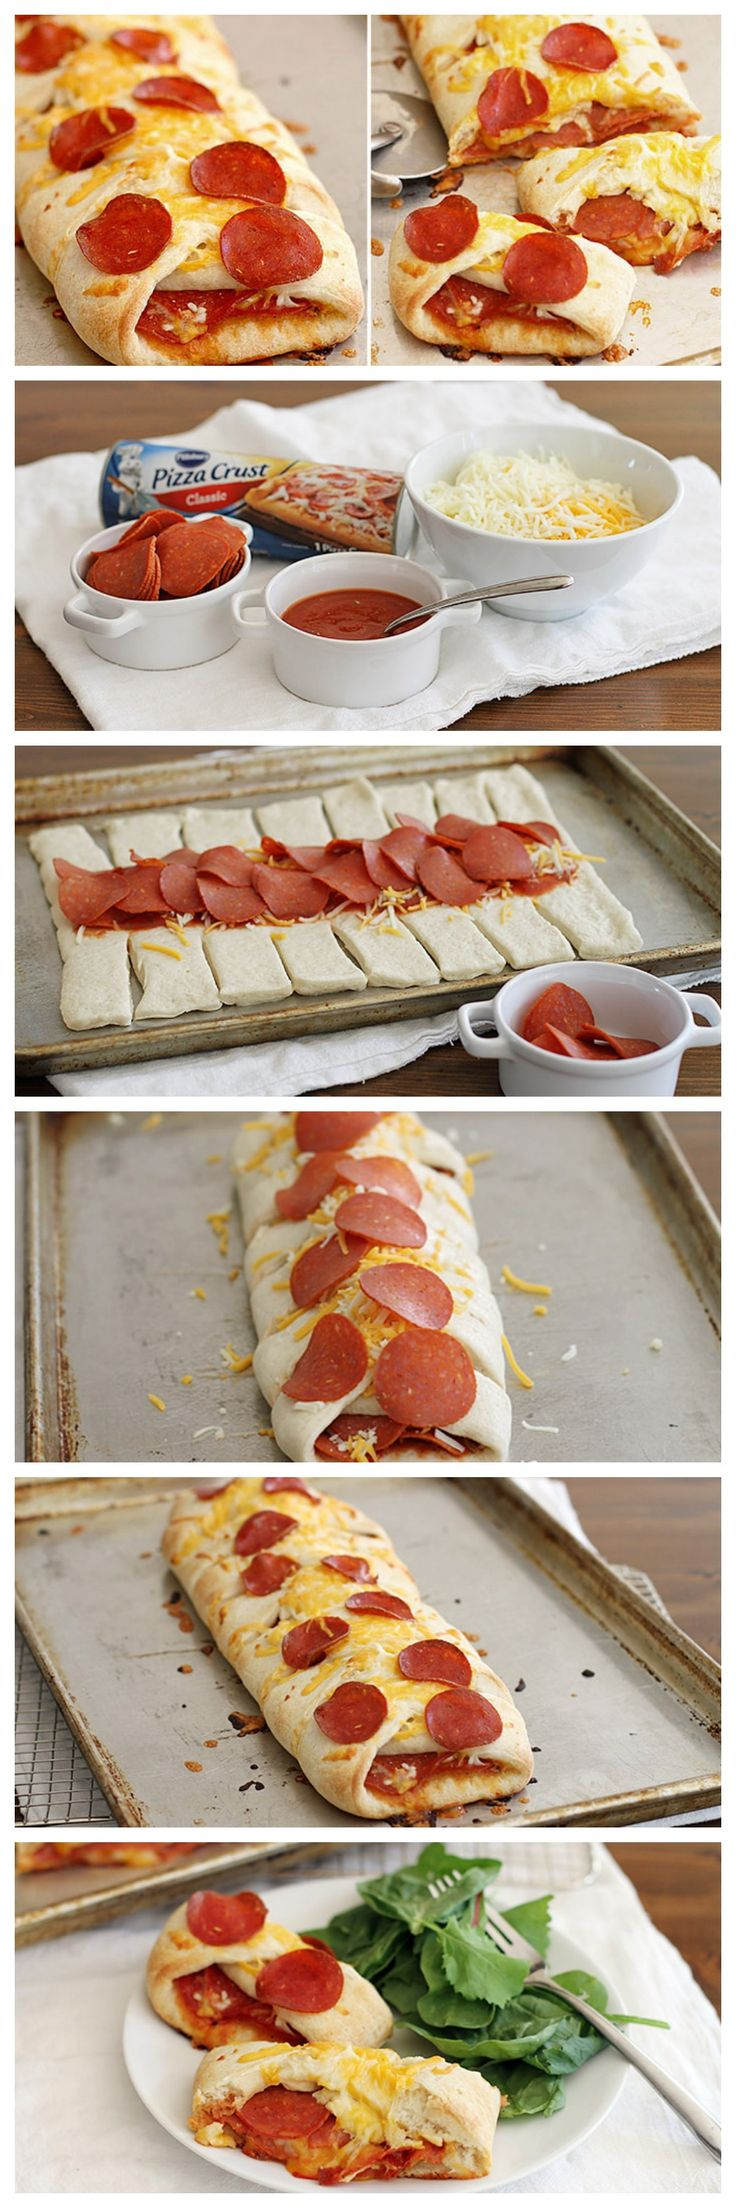 Pepperoni Pizza Braid is another fun way to do Friday Night Pizza Night right!